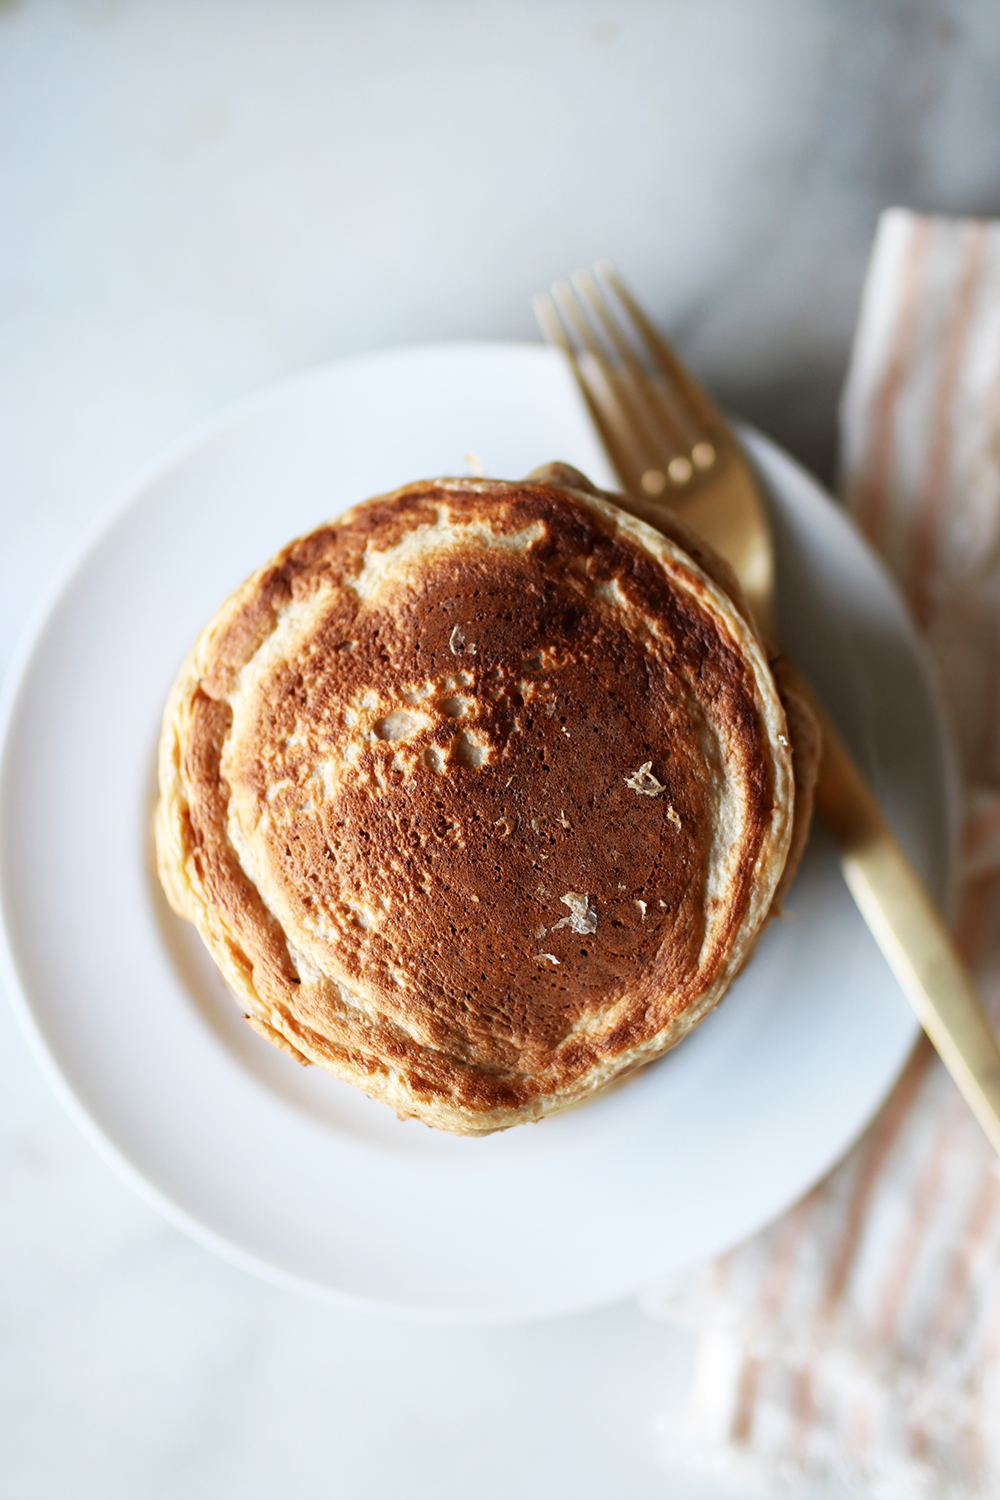 Food file the best healthy dairy free protein pancake recipe 13 cup unsweetened almond milk i use this one 1 scoop vanilla flavoured protein powder i use this one 12 cup lactose free greek yogurt ccuart Gallery